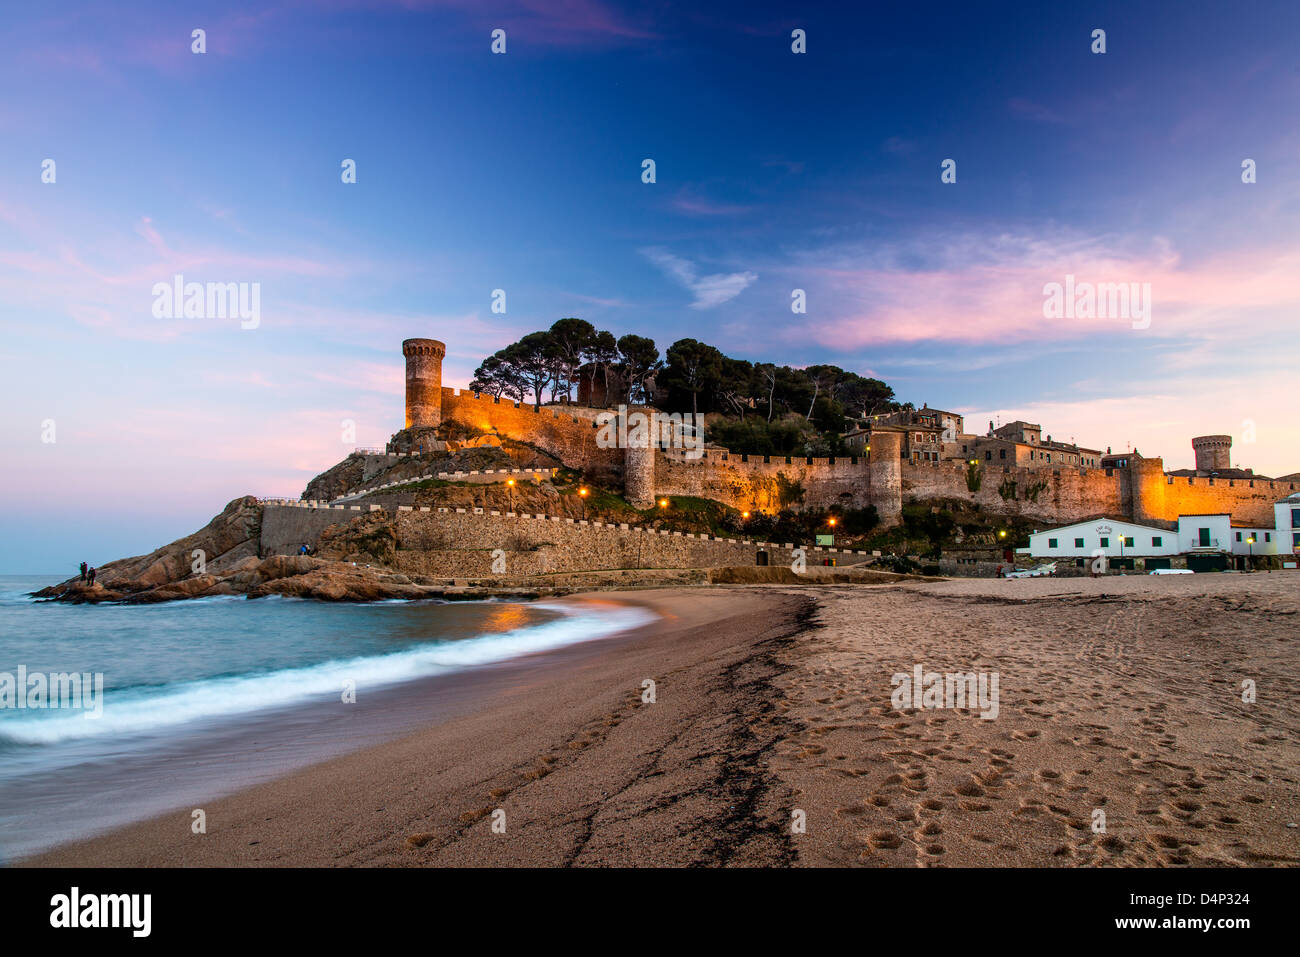 View at dusk of Vila Vella, the medieval old town of Tossa del Mar, Costa Brava, Catalonia, Spain - Stock Image